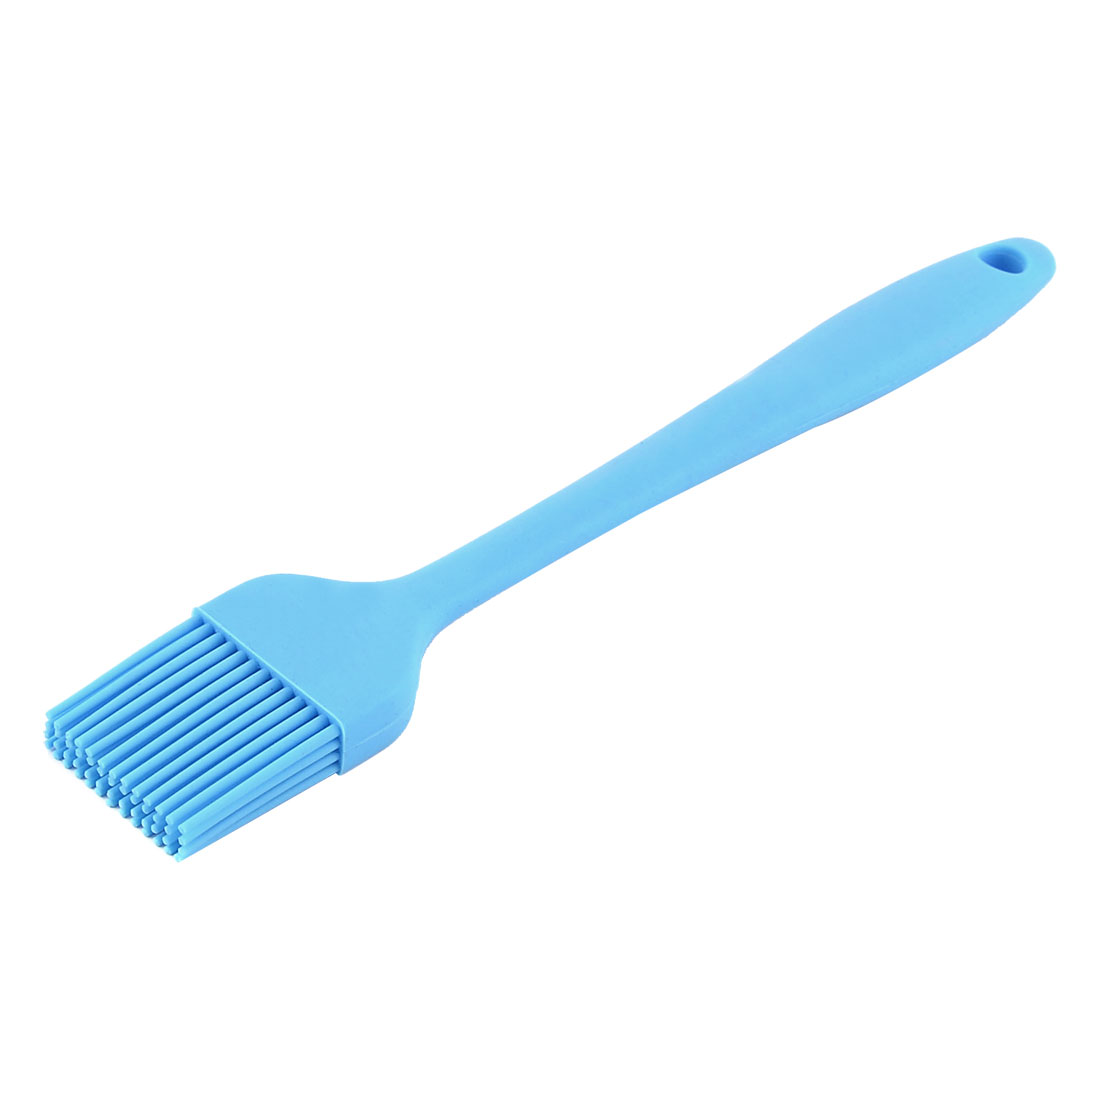 Cooking Gadget Silicone Heat Resistant Oil Sauce Basting Pastry Brush Blue